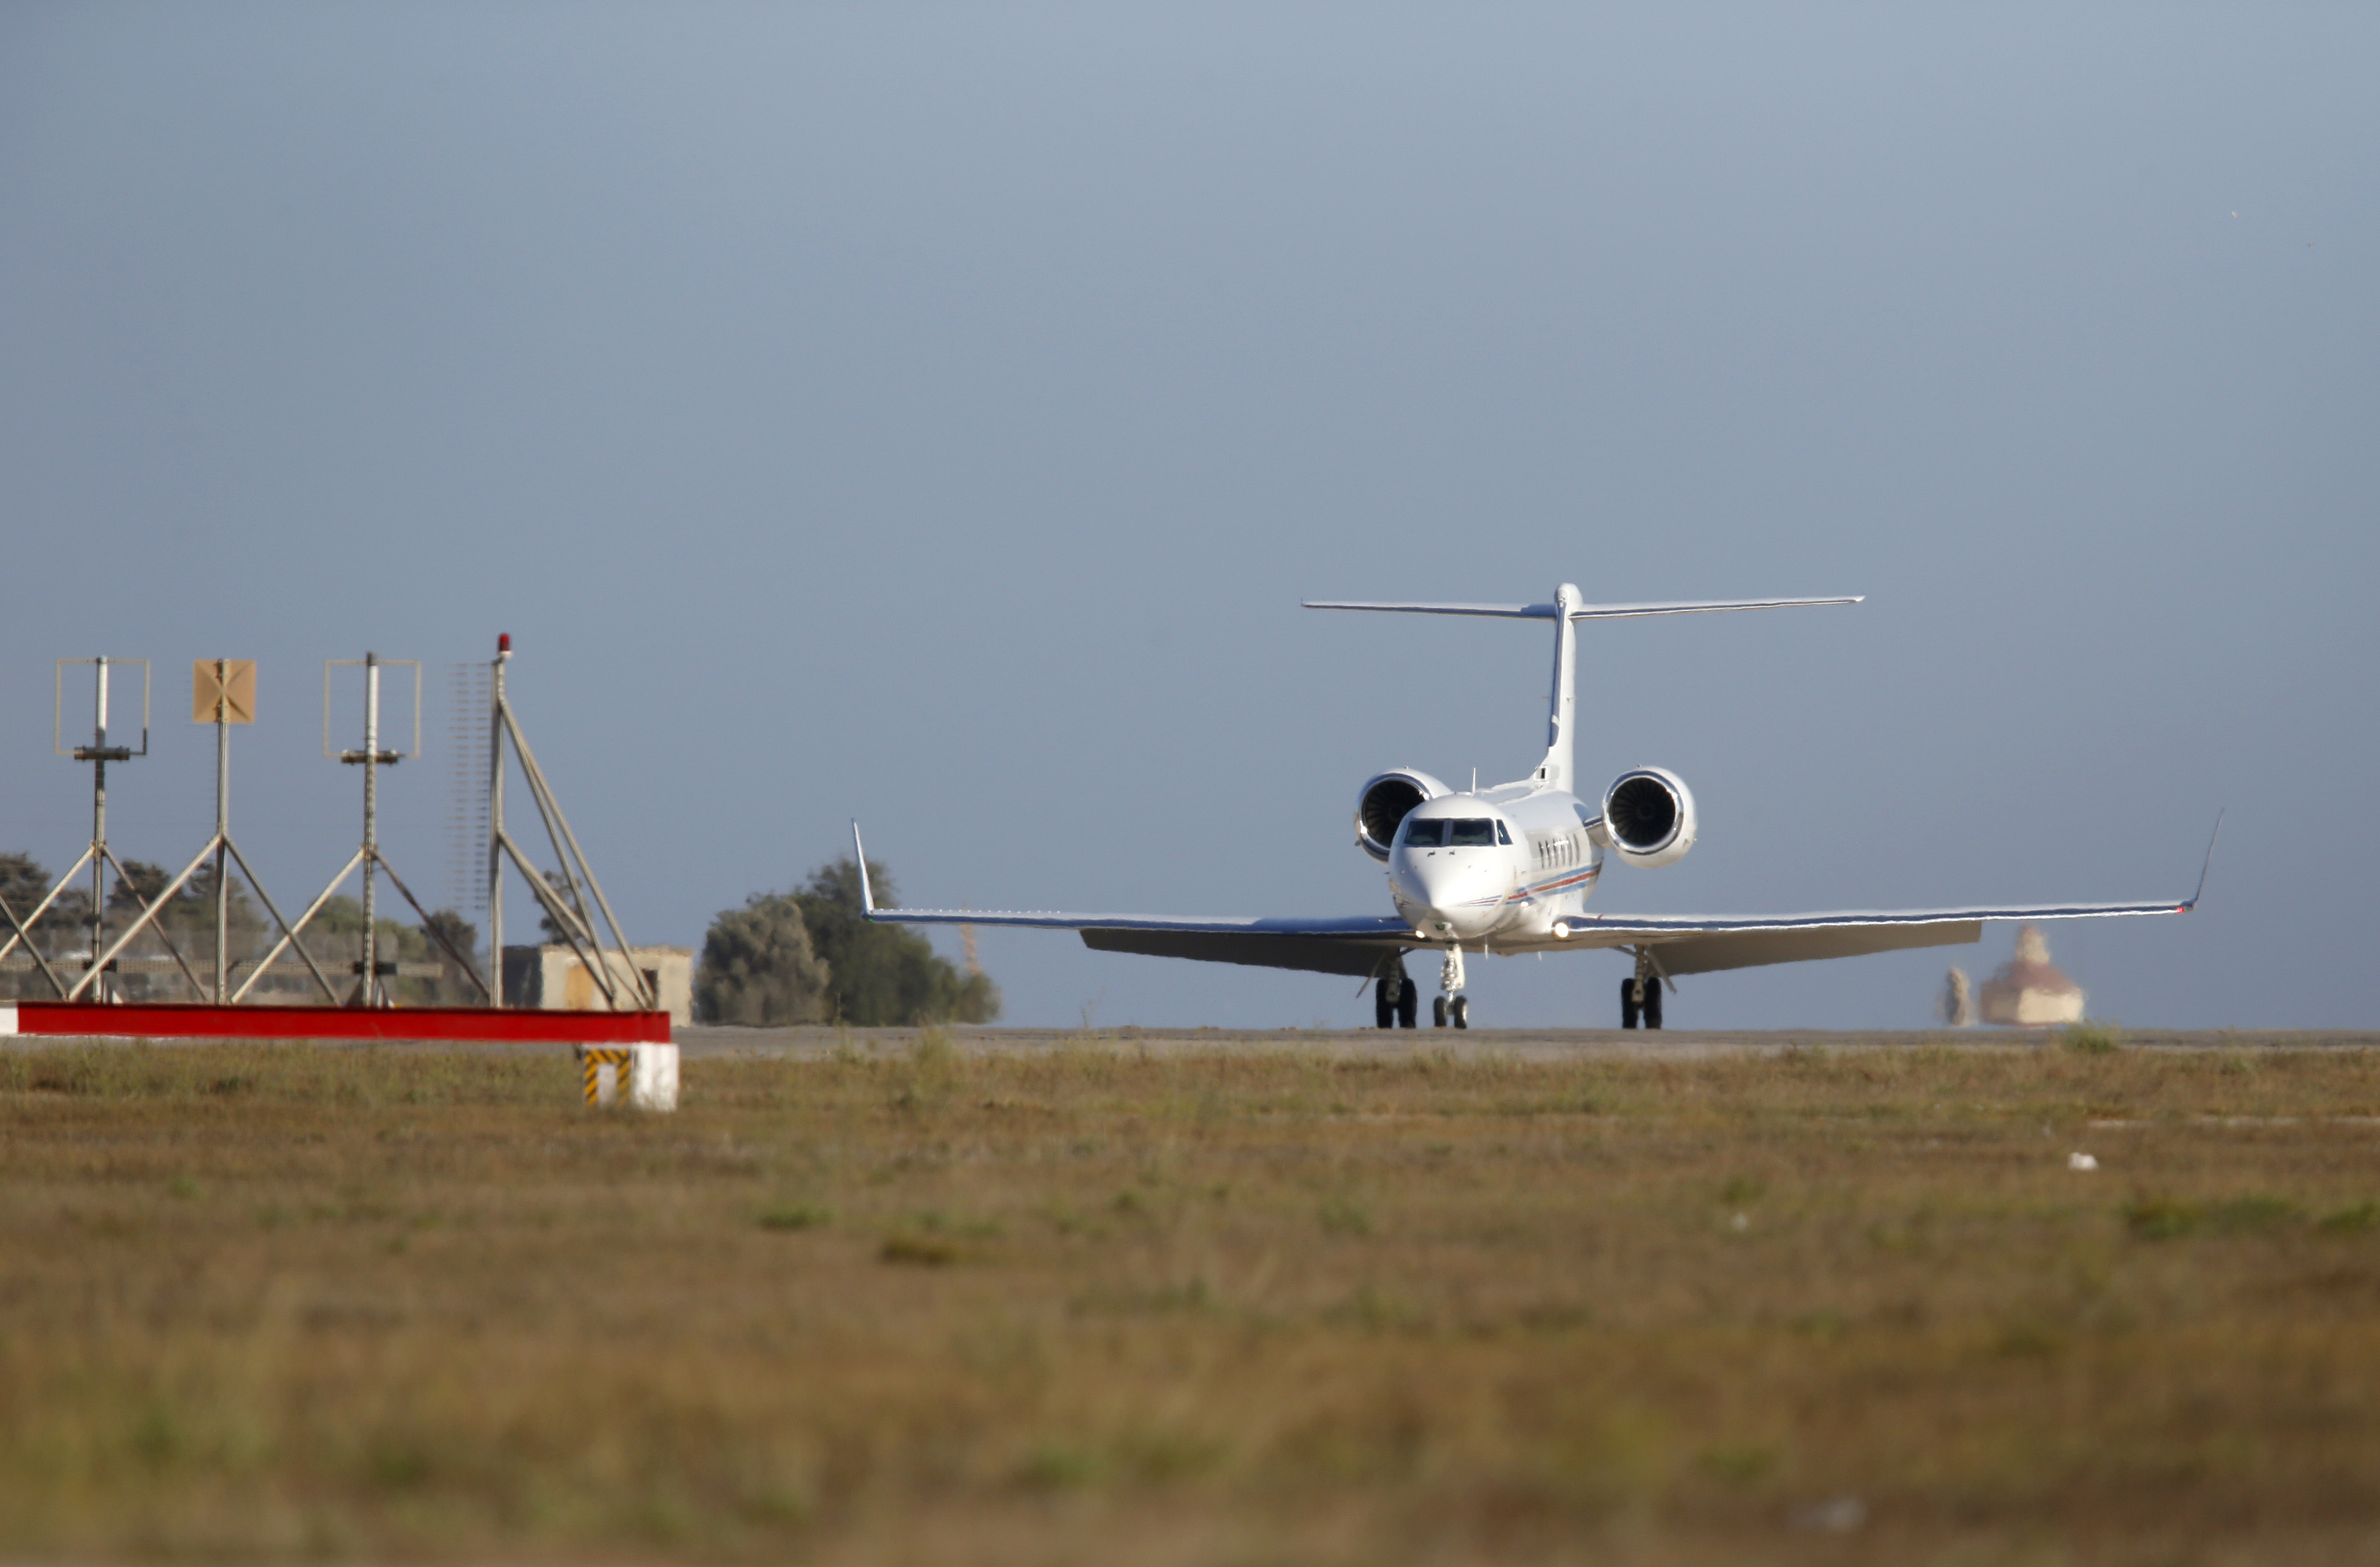 A Gulfstream G450 private jet with U.S. actor Brad Pitt onboard arrives at Malta International Airport